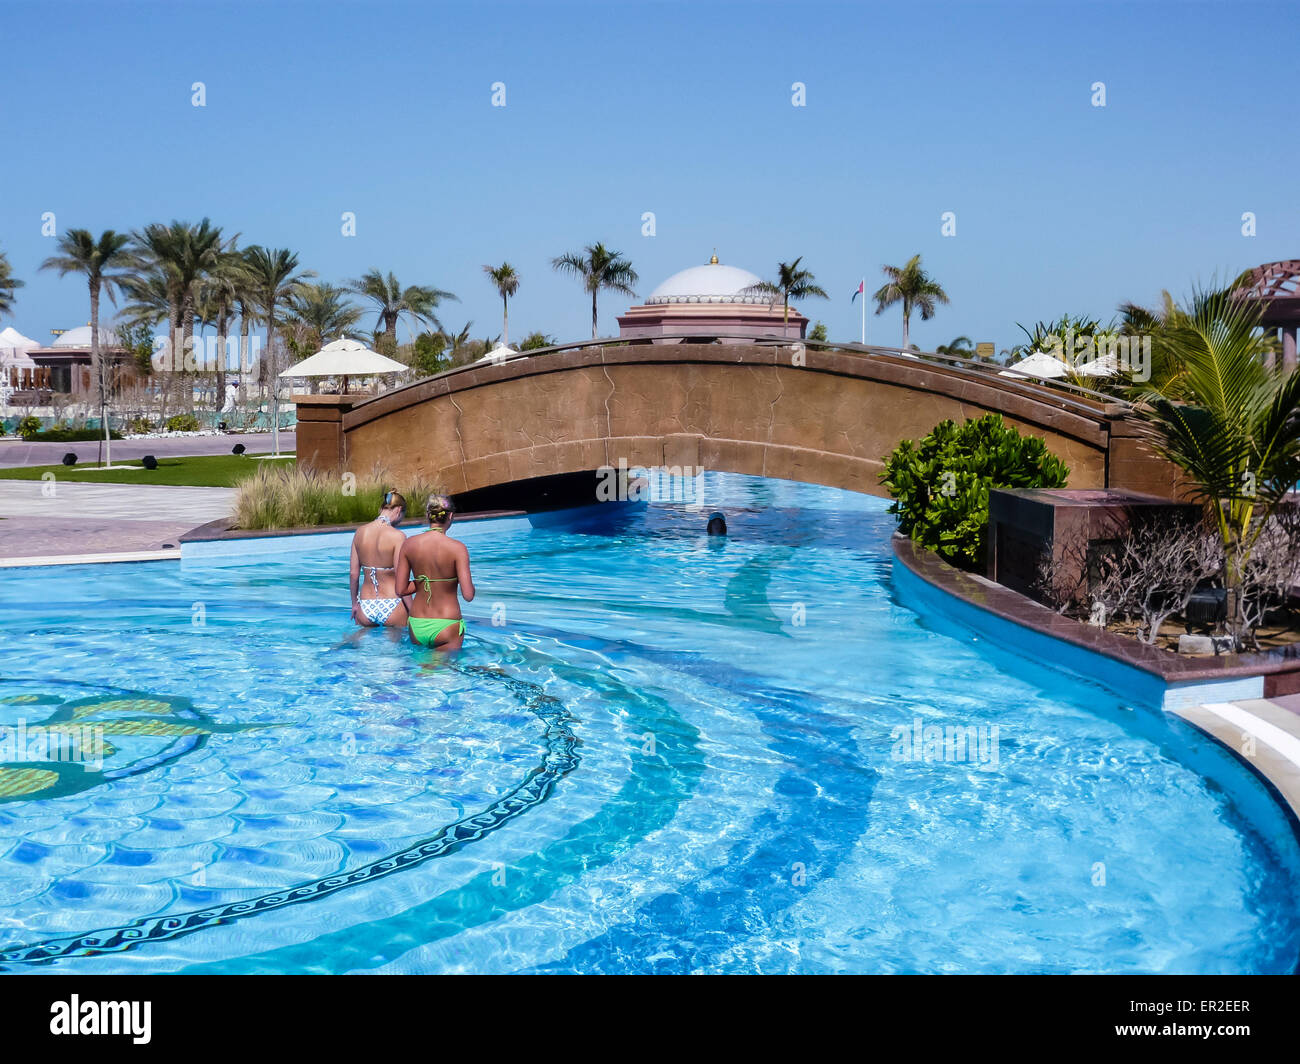 Outside Swimming Pool At The Emirates Palace Hotel Abu Dhabi Stock Photo Royalty Free Image